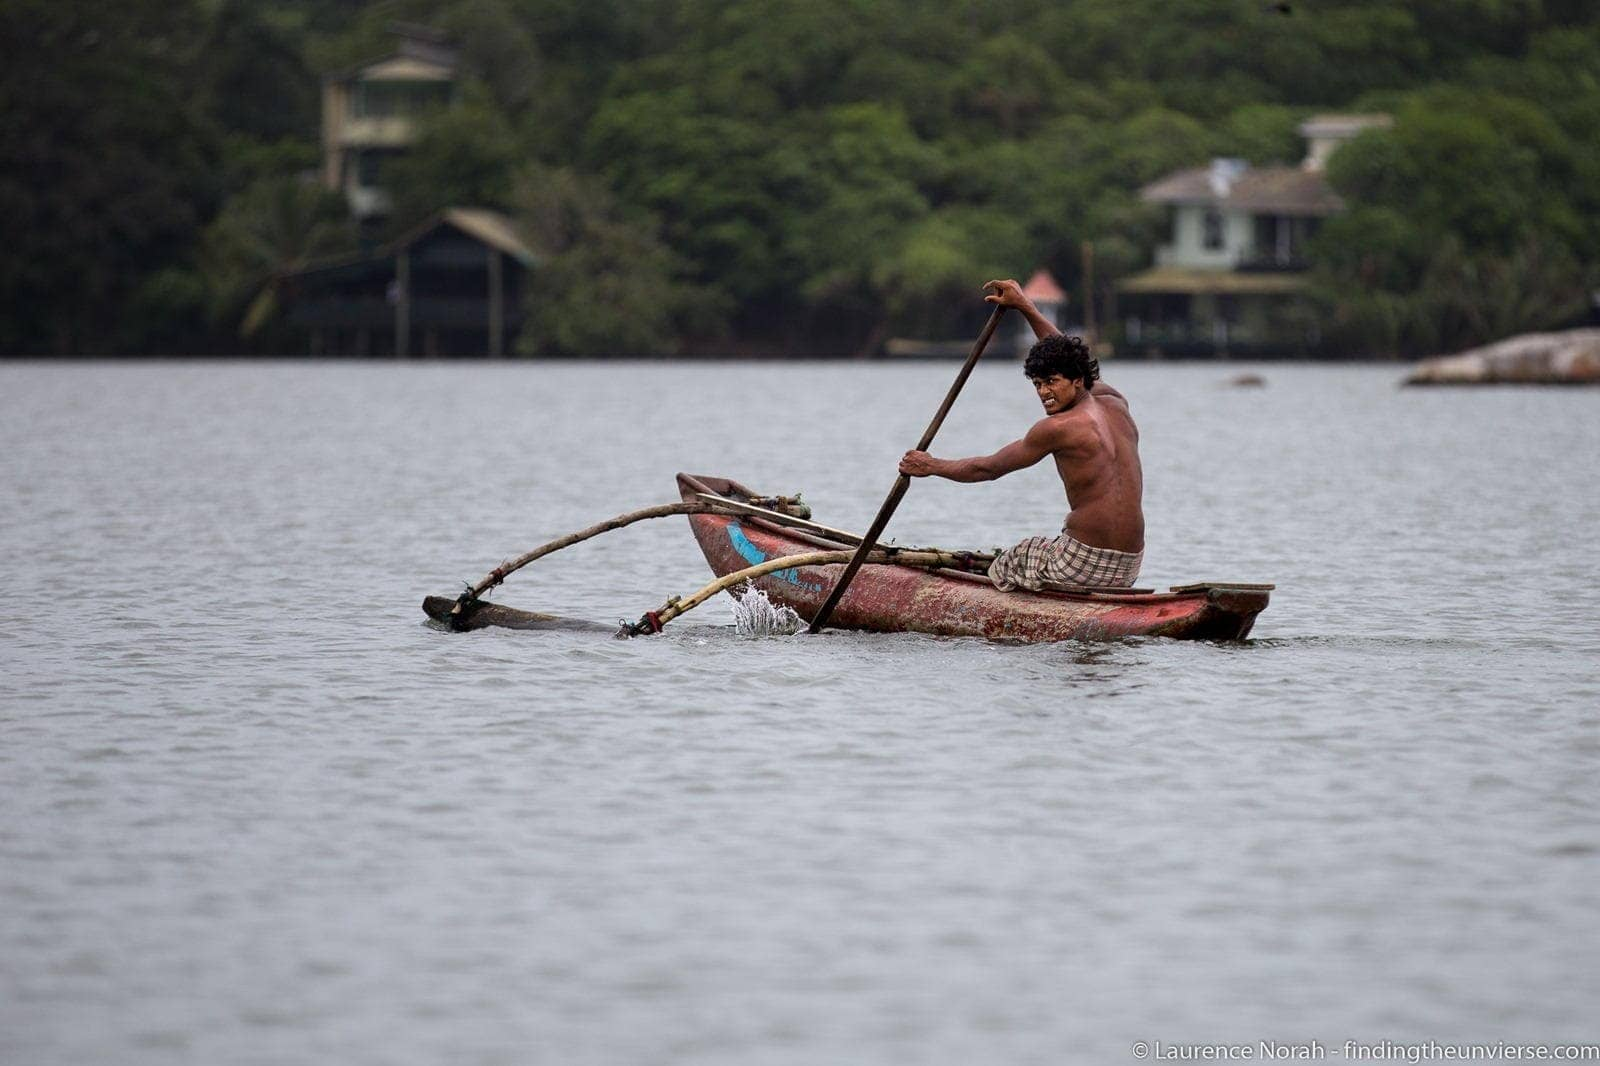 Sri Lanka man canoeing scaled